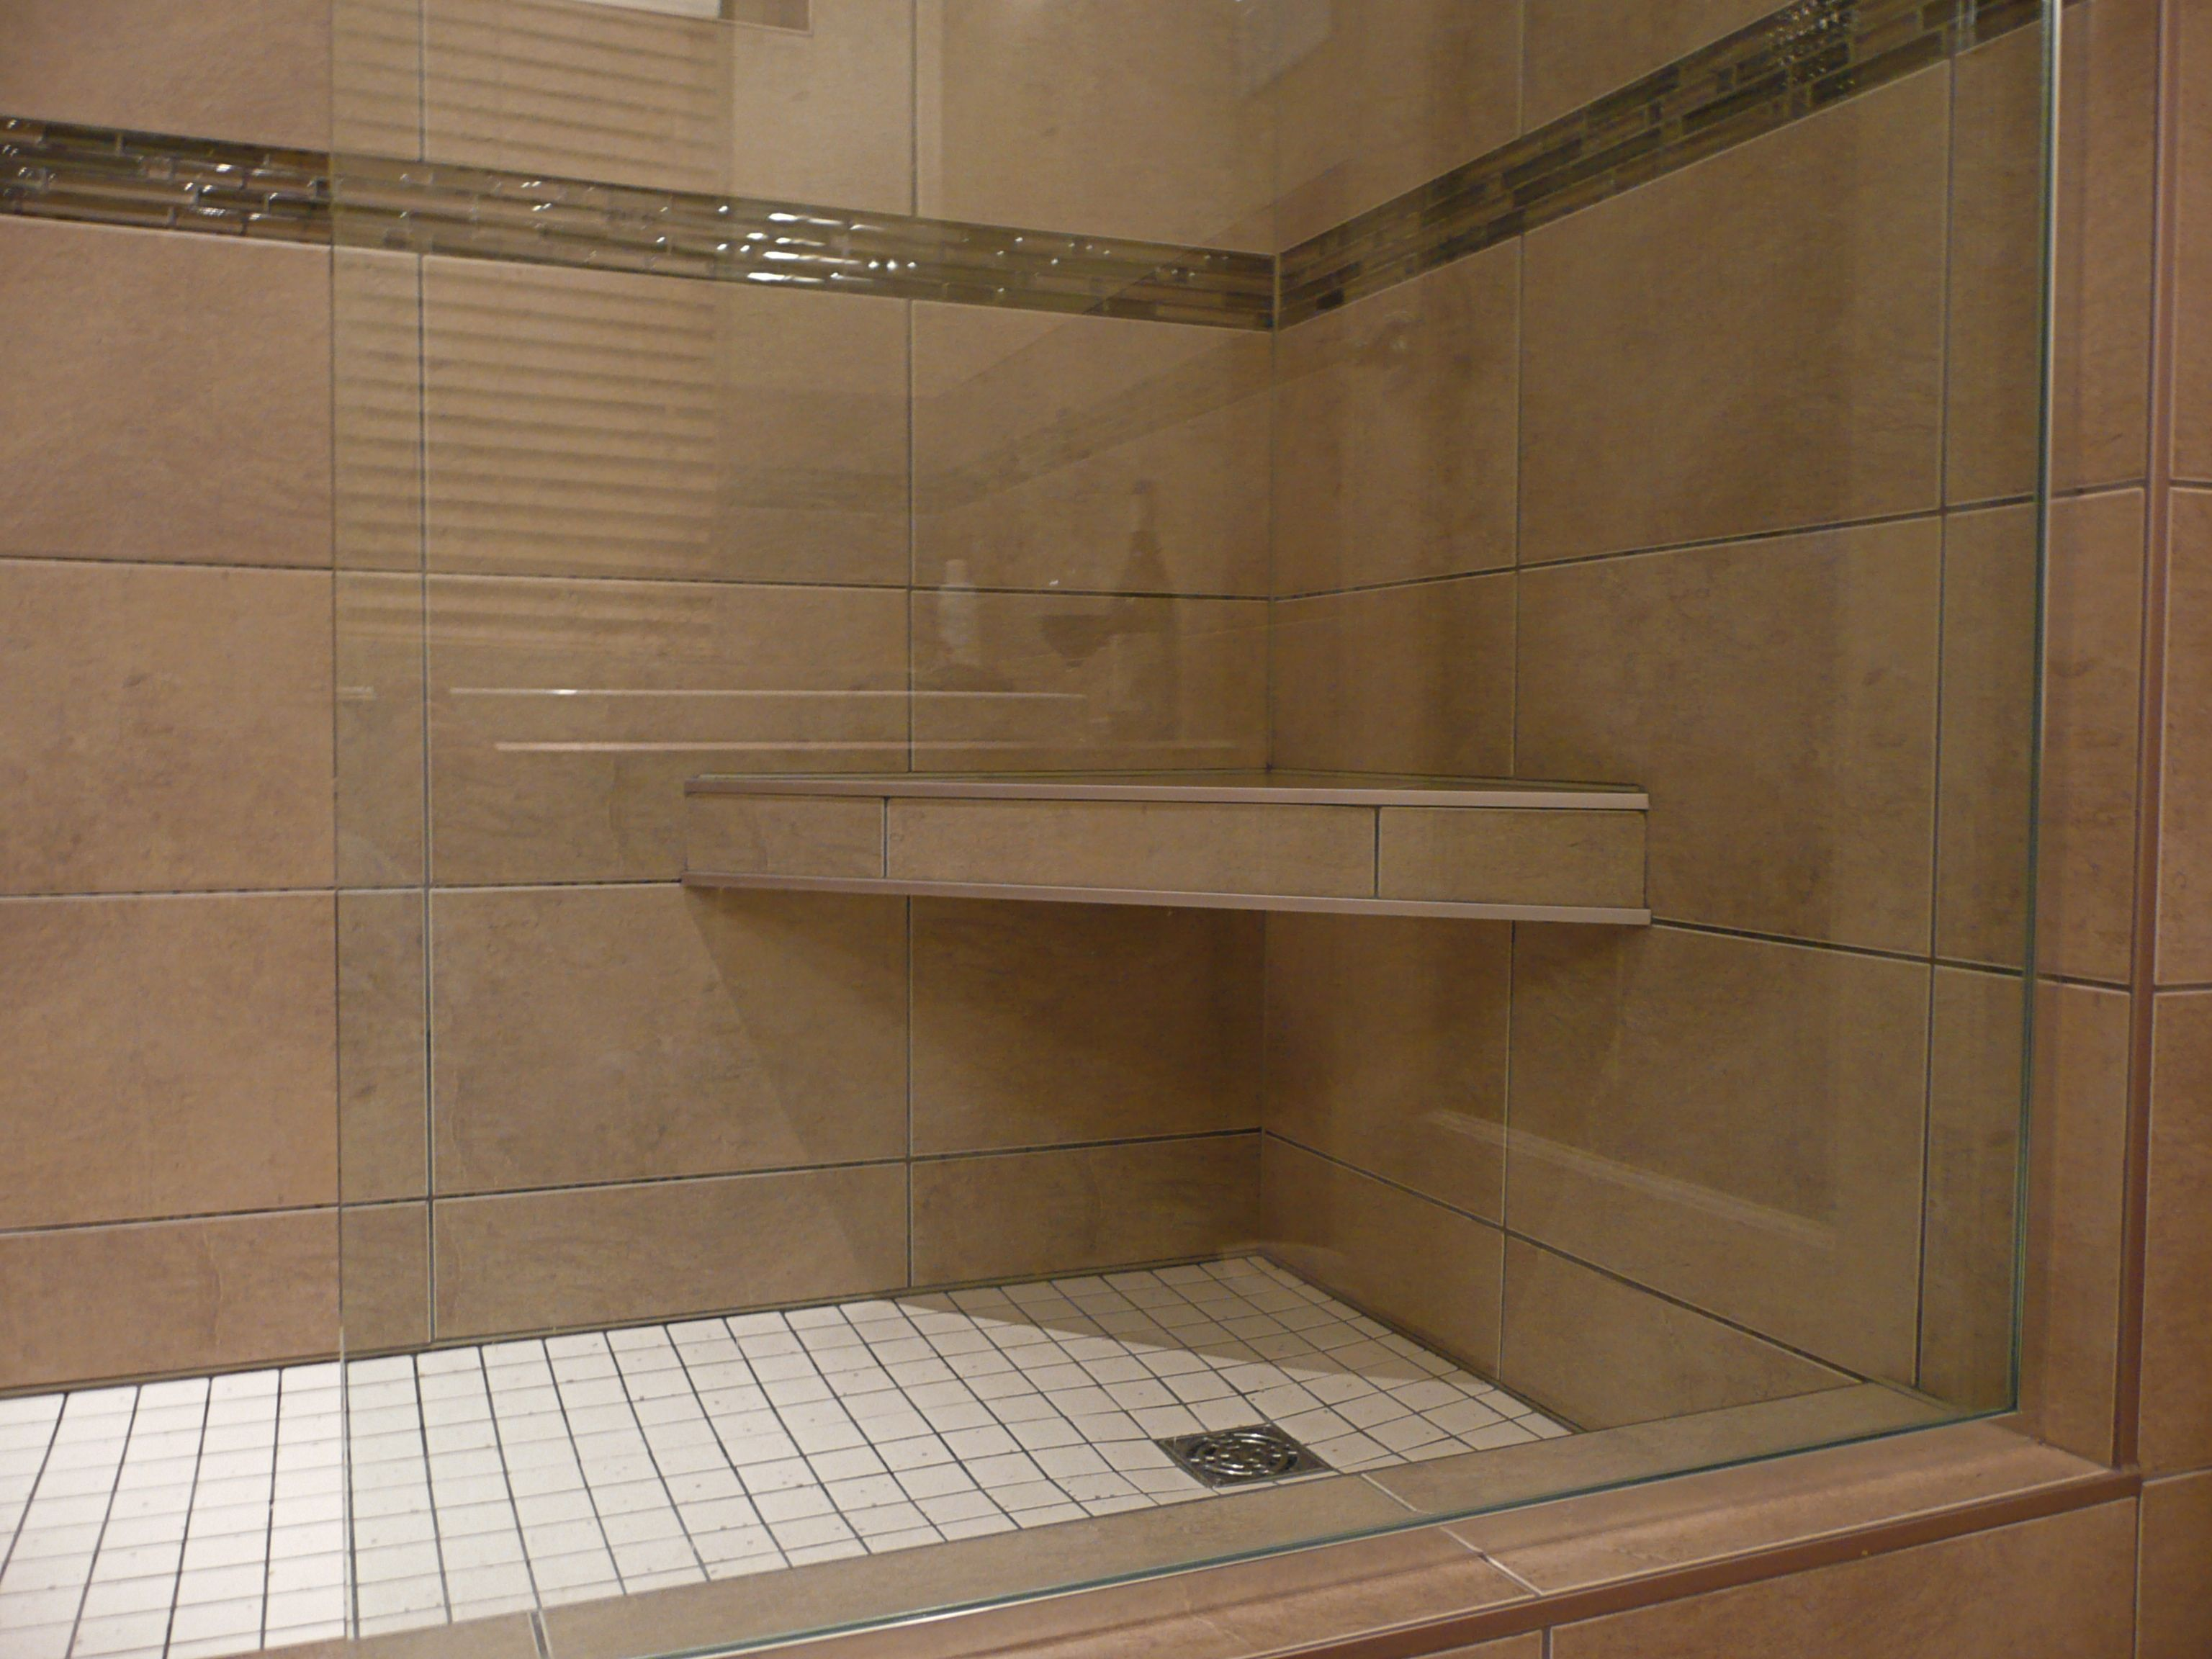 Floating Shower Bench | Shower benches, Bench and Wall pictures